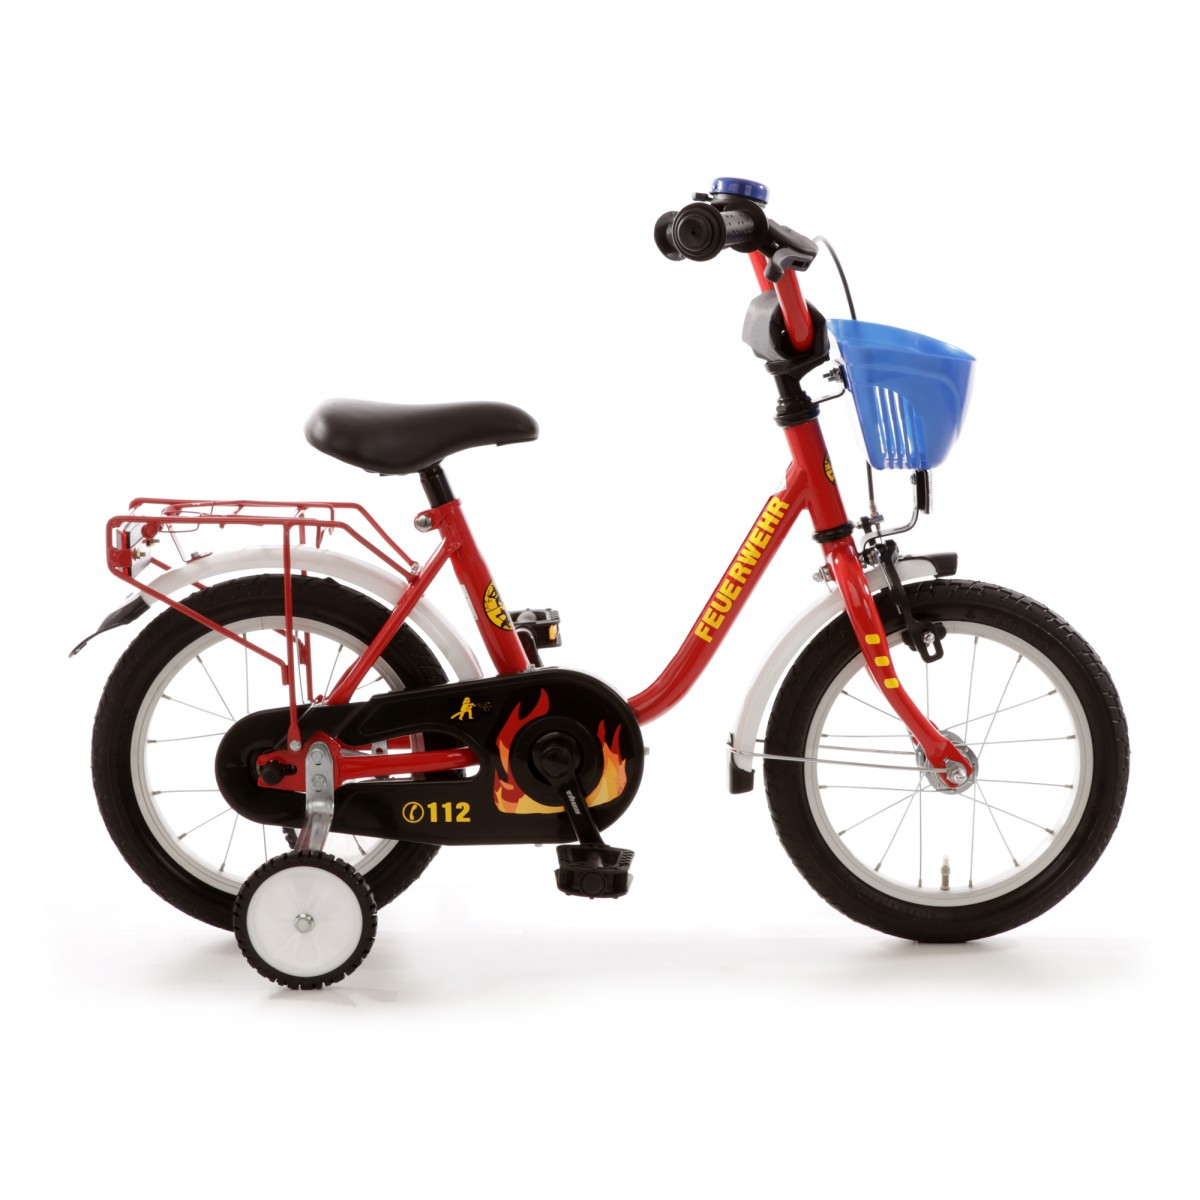 bachtenkirch kinderfahrrad 14 zoll feuerwehr. Black Bedroom Furniture Sets. Home Design Ideas